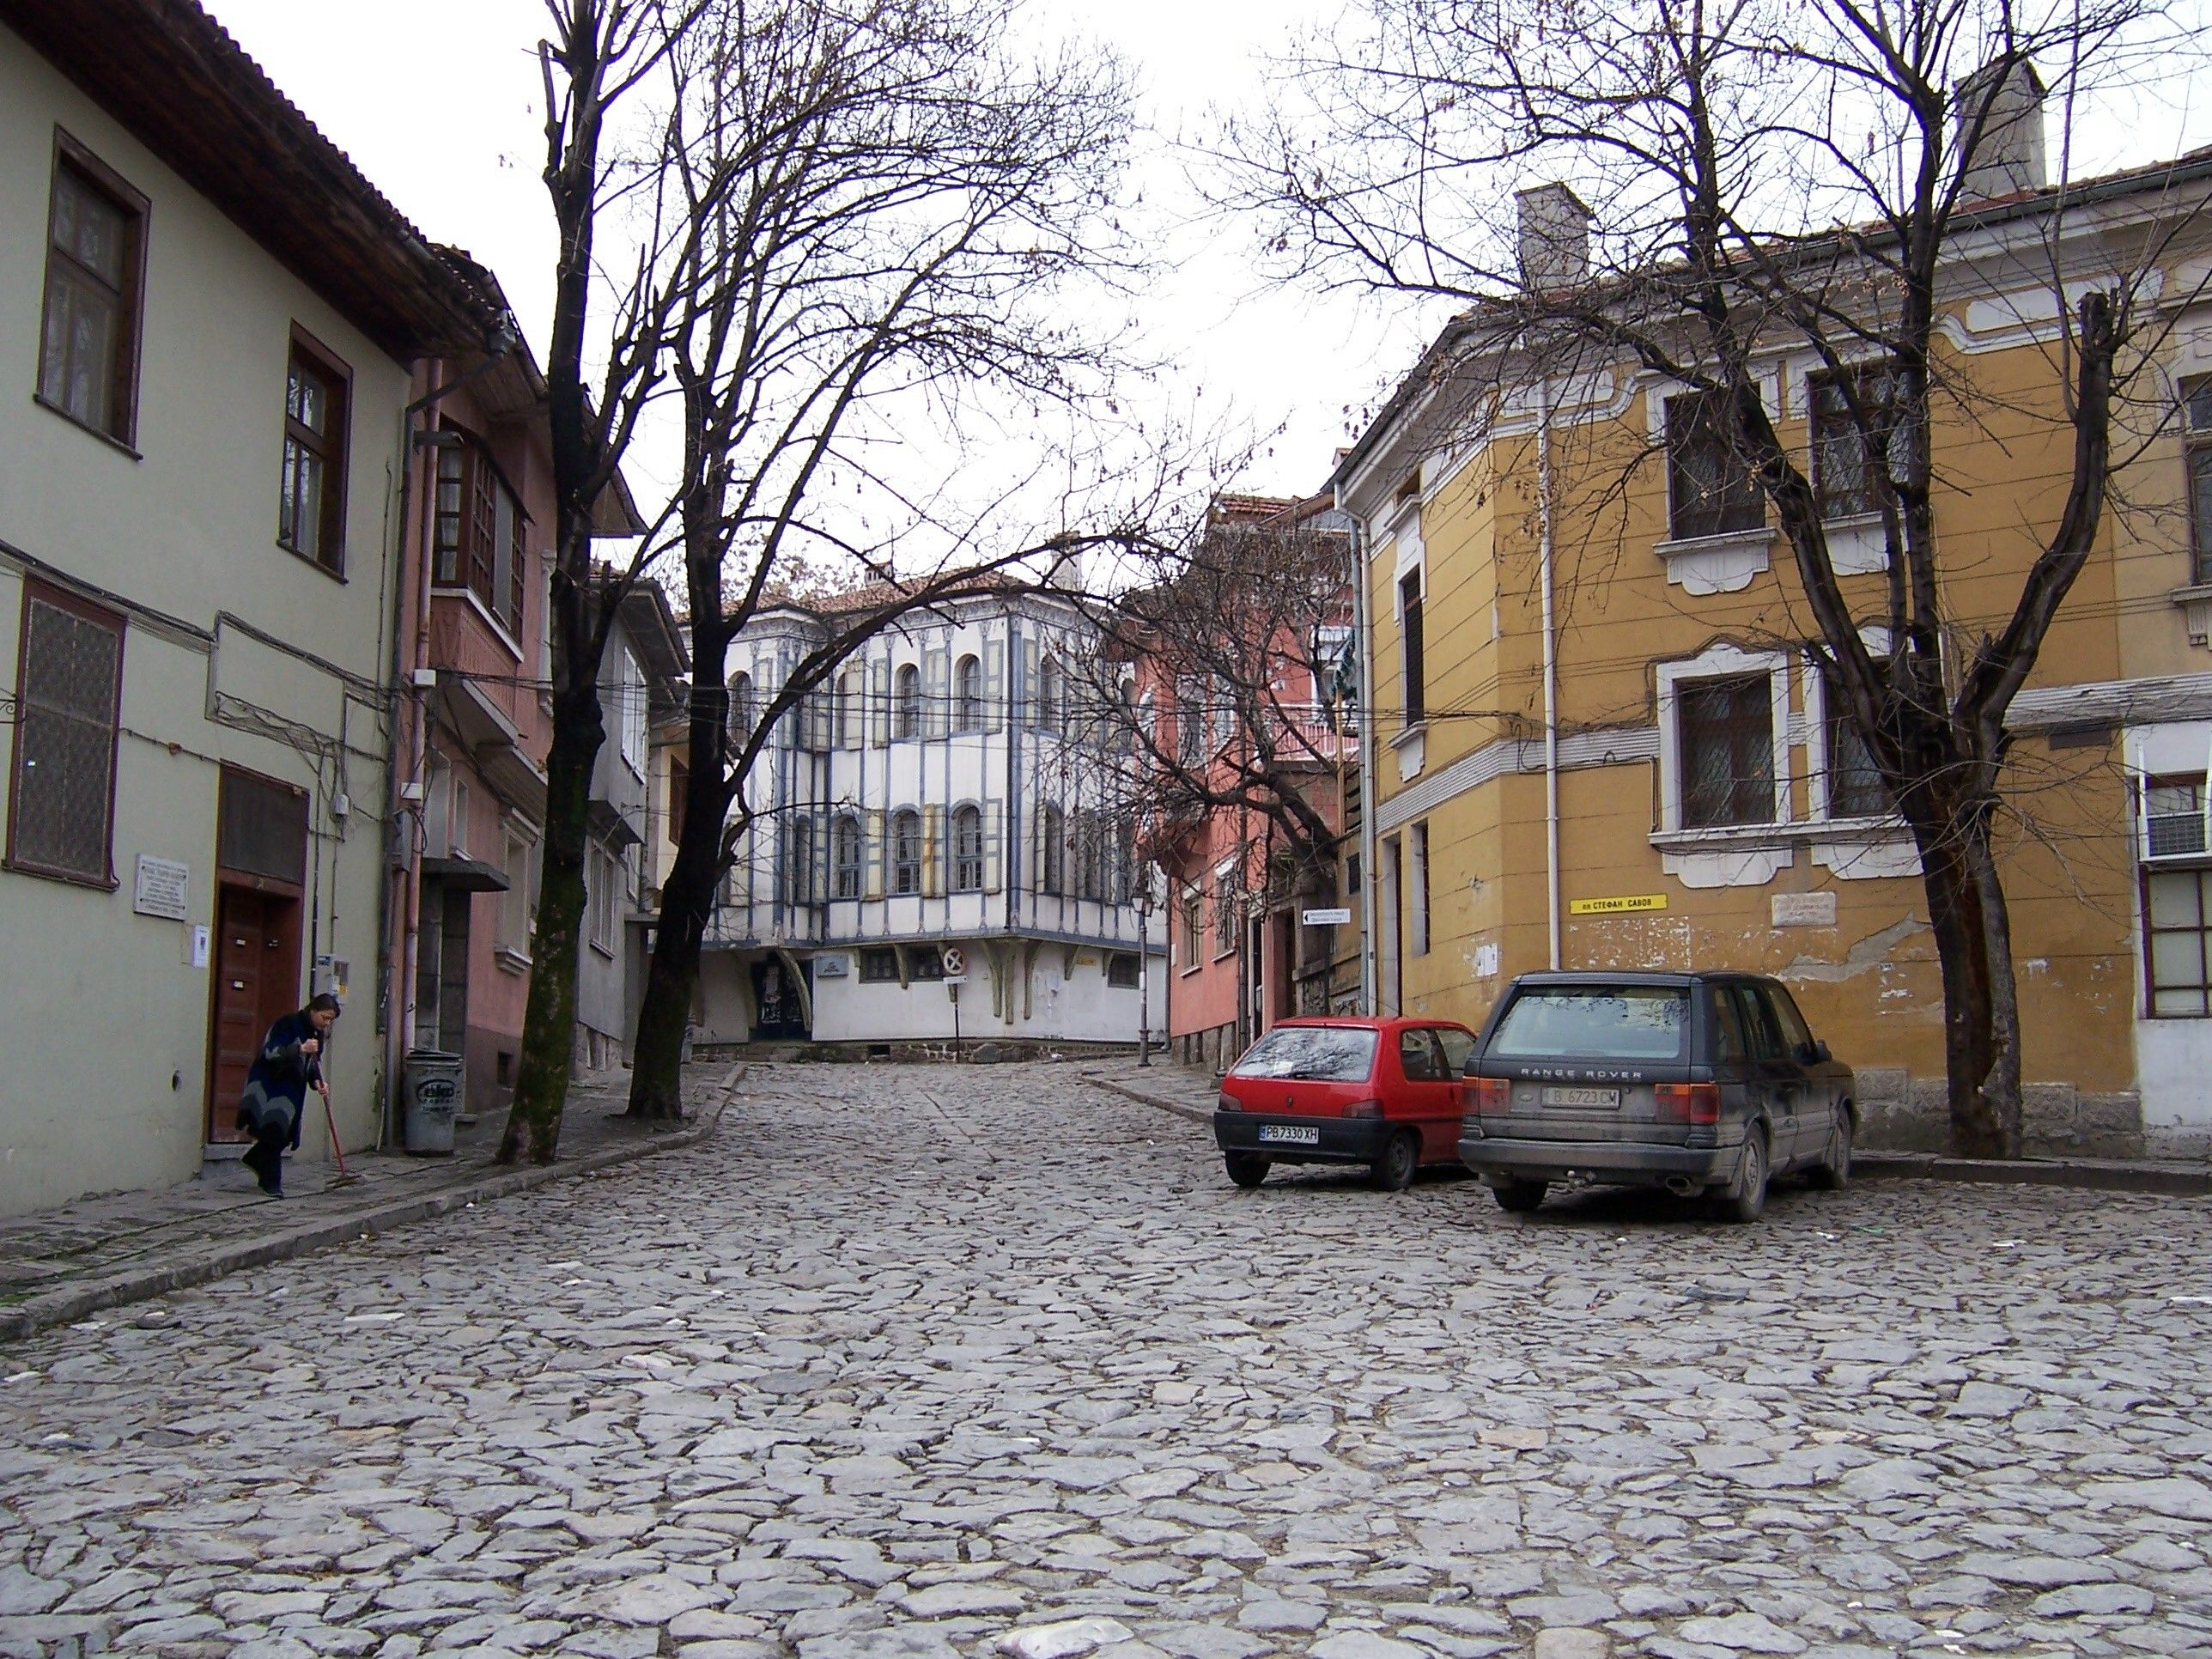 Town Scene - http://wallpaperzoo.com/town-scene-6826.html #Town ...